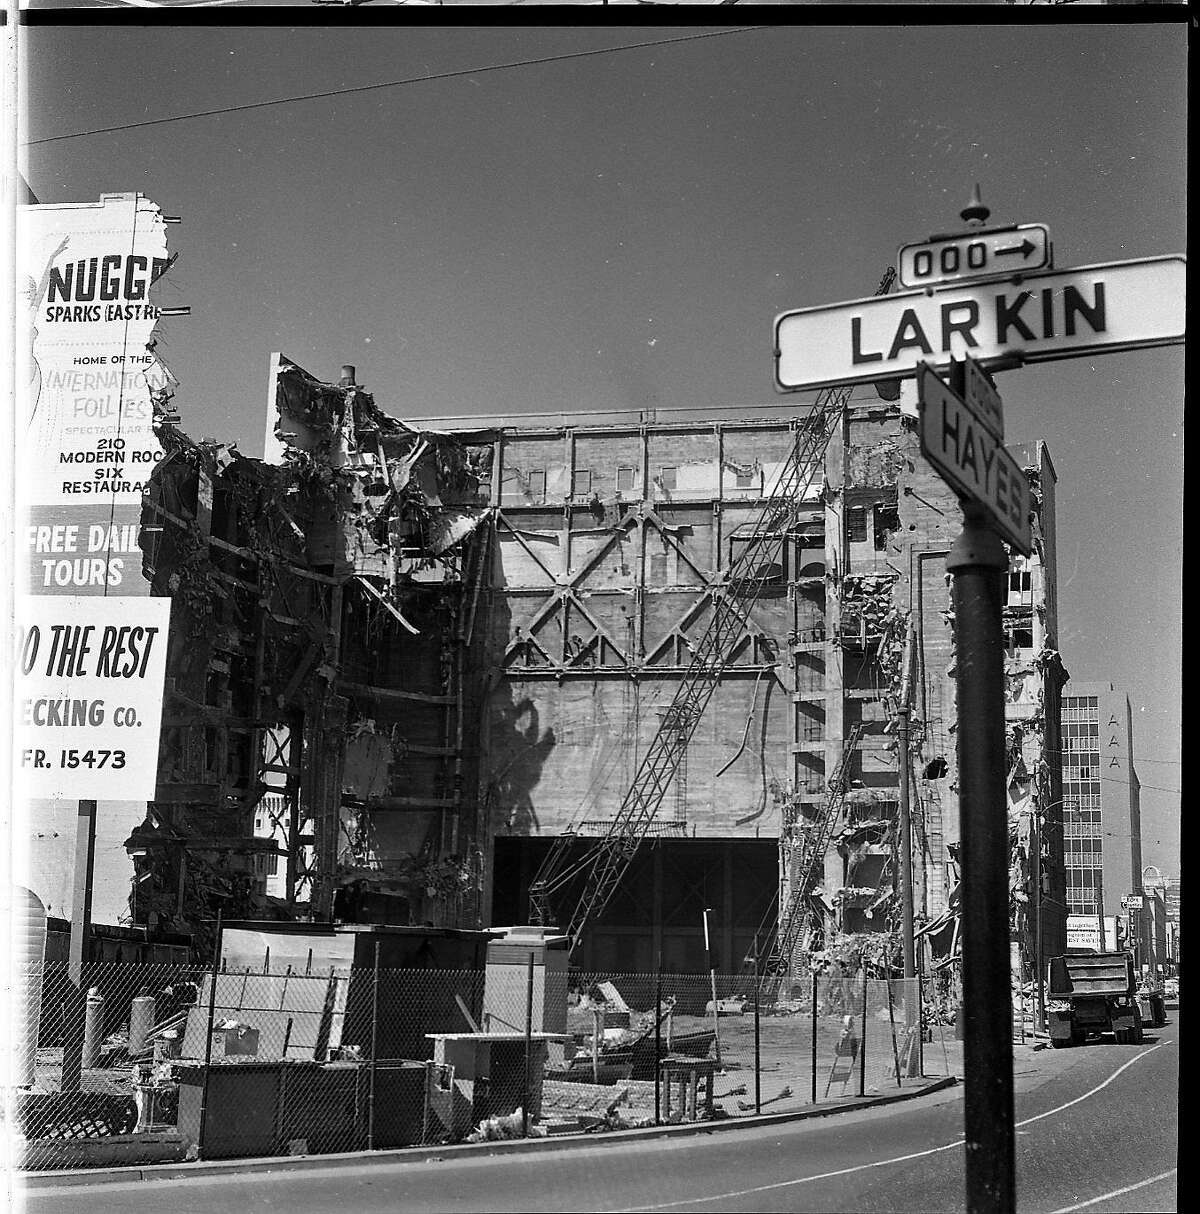 The demolition of the old San Francisco Fox Theater in April, 1963.